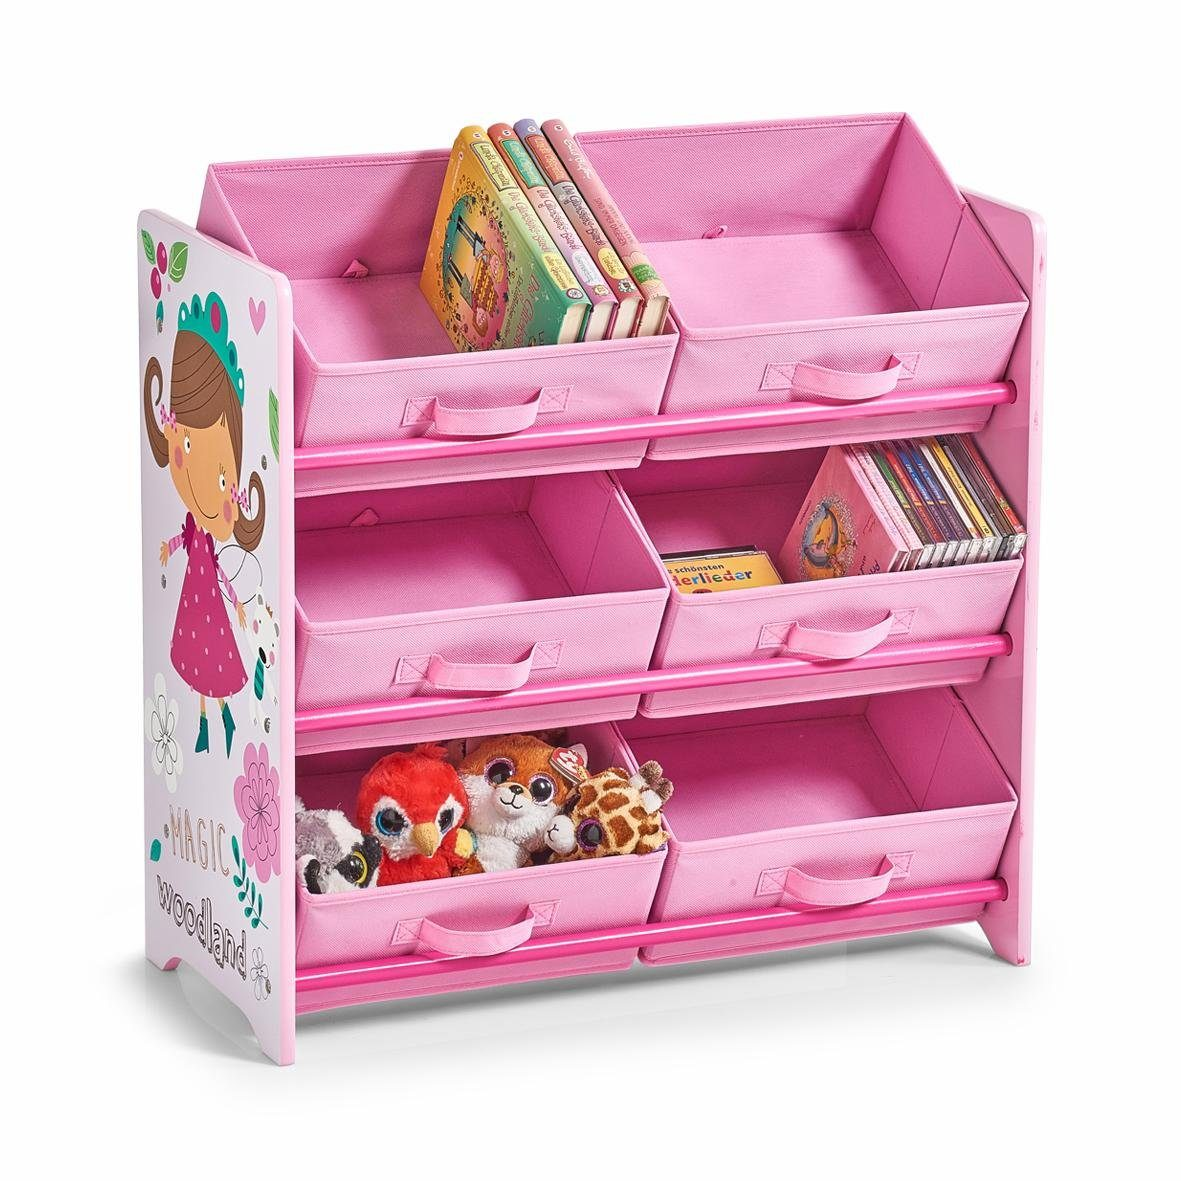 Home affaire Kinder-Regal m. Vliesboxen »Girly«